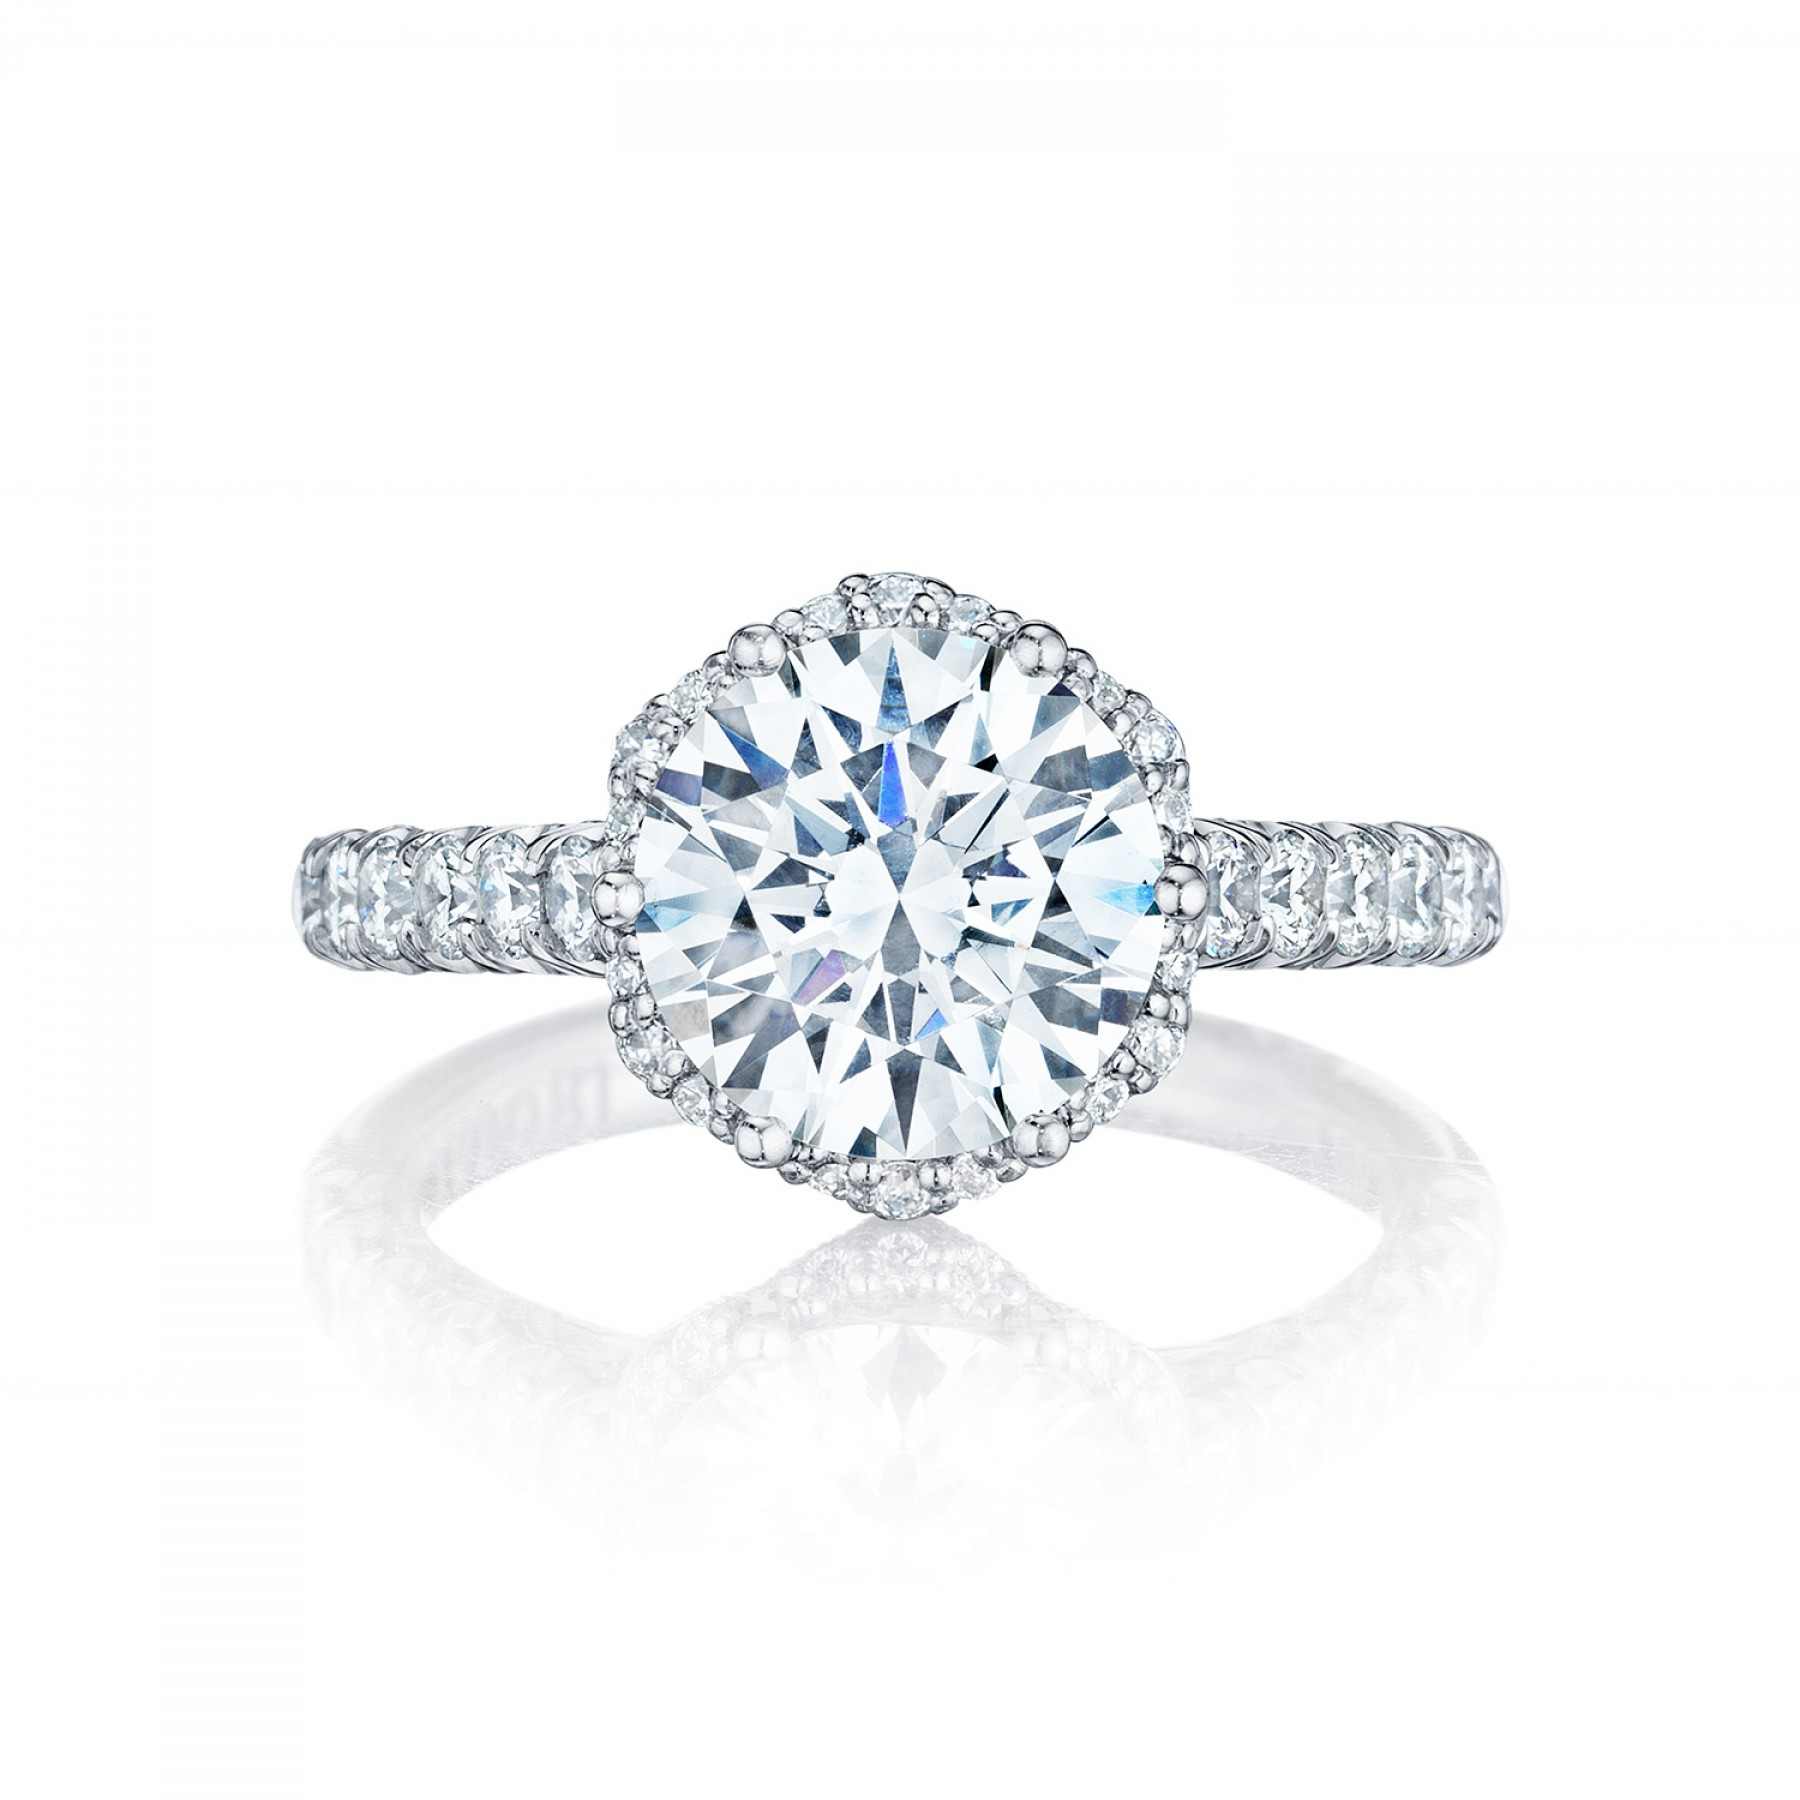 Style# HT254725RD9 - Petite Crescent - Engagement Rings - Tacori.com